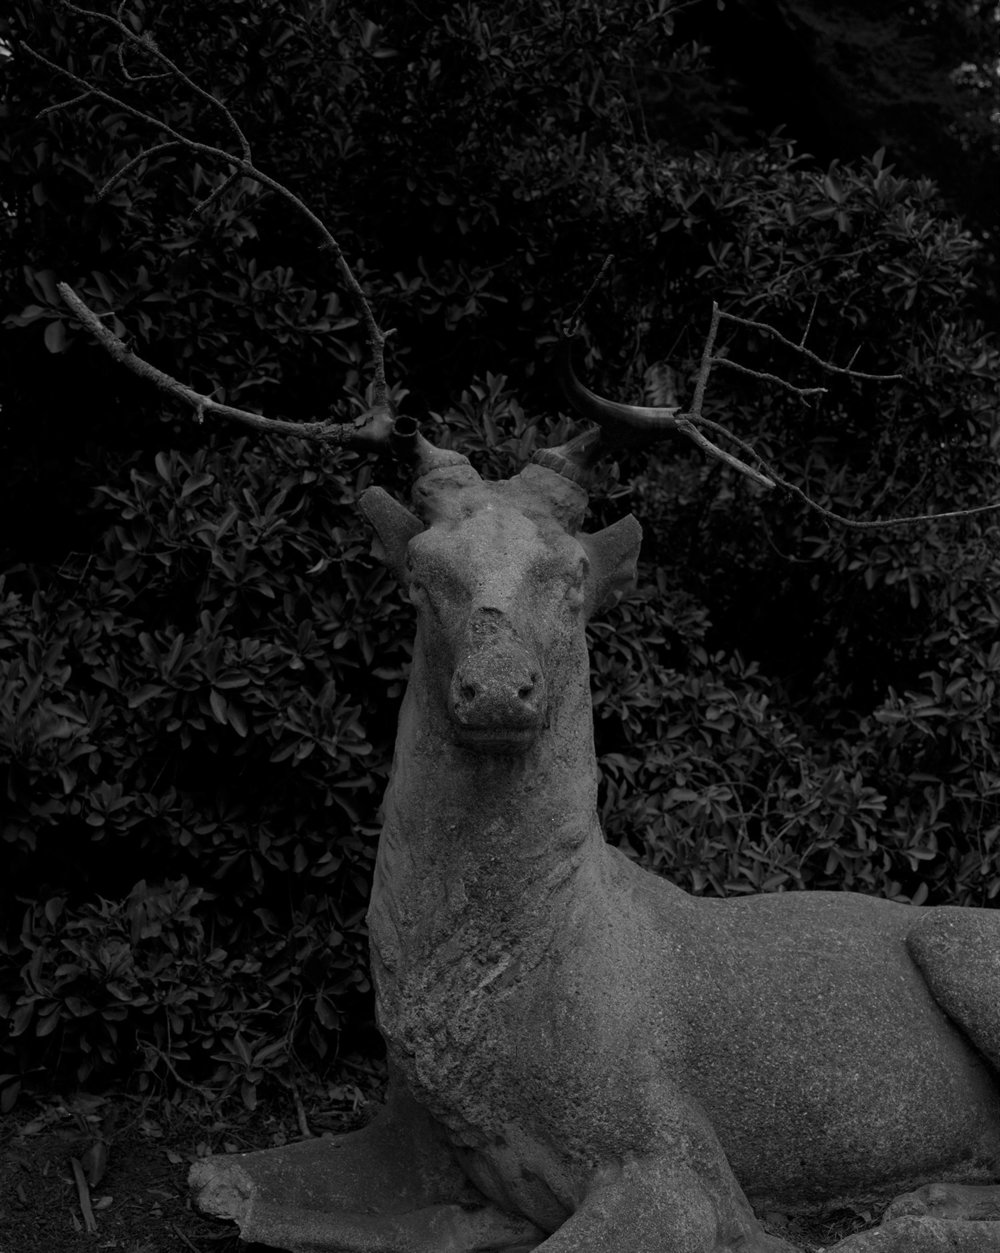 CHRISTINE ELFMAN  Actaeon as Stag , 2014 Silver gelatin print 37 x 29 inches Edition of 3 + 2AP